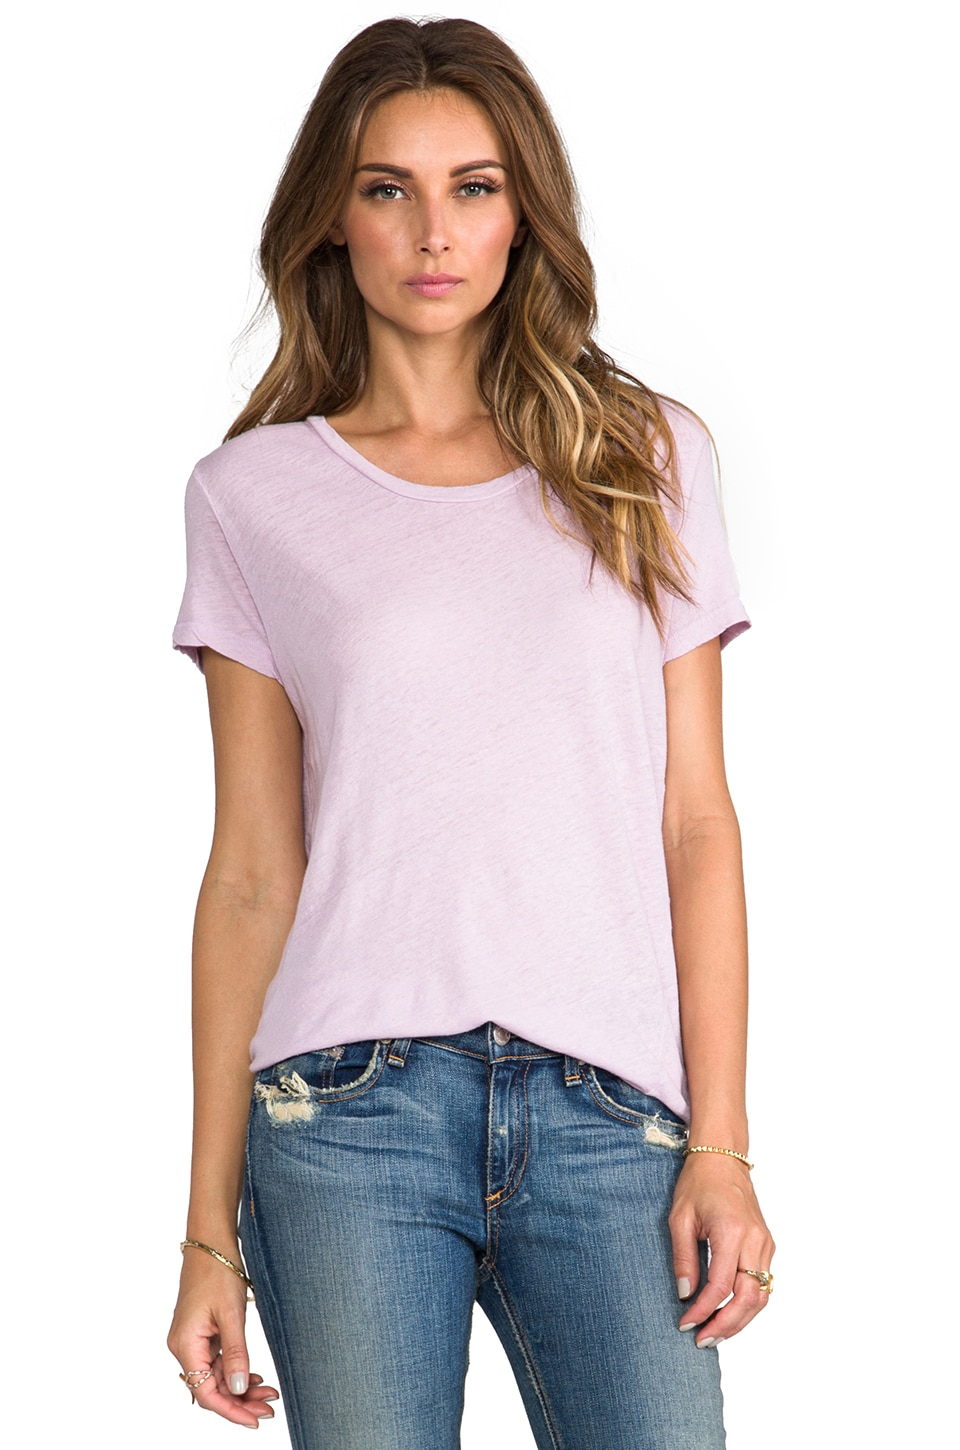 My Line Haven Loose Tee in Lavender